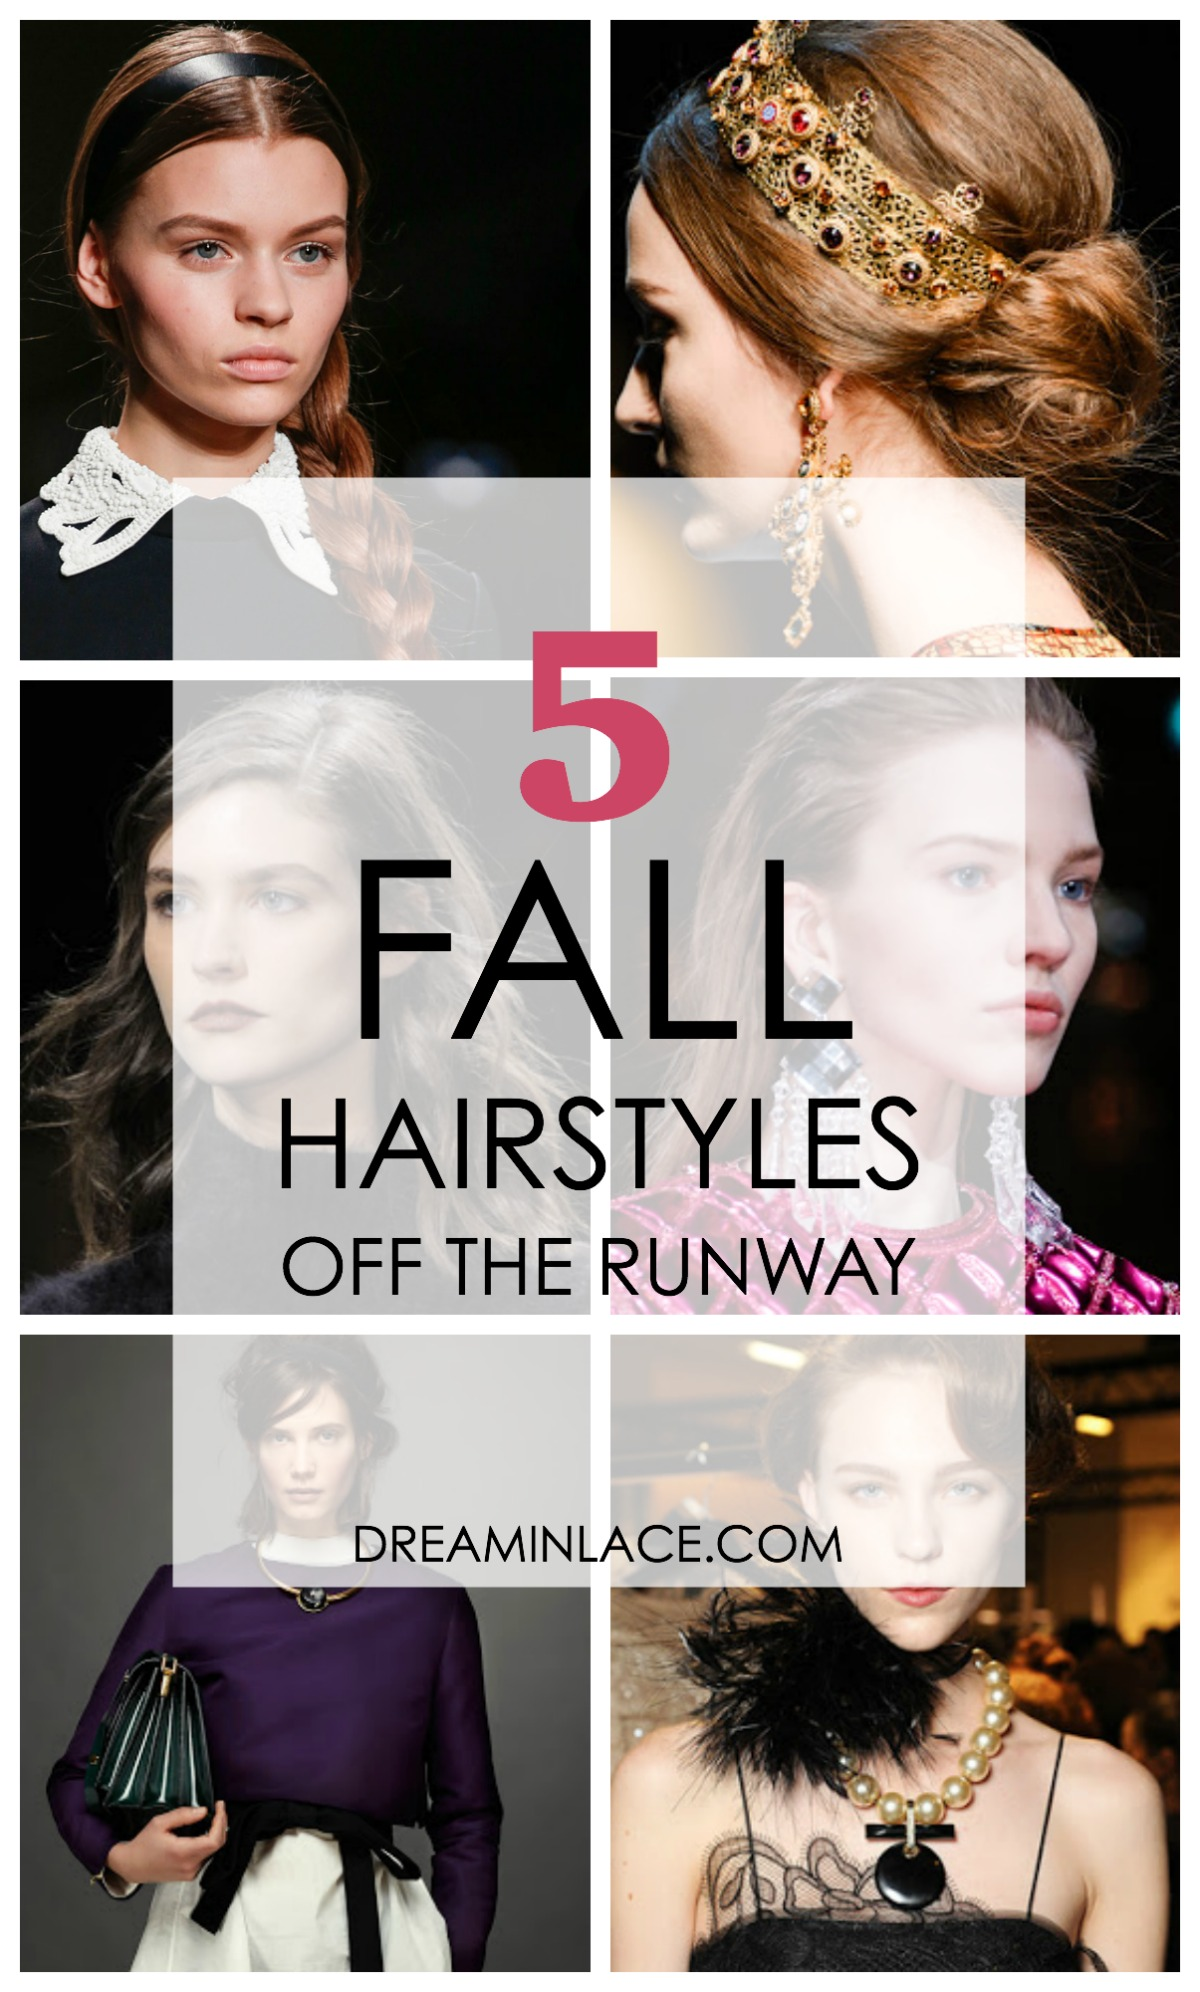 Straight Off the Runway: 5 fall hairstyles #hairstyles #runway